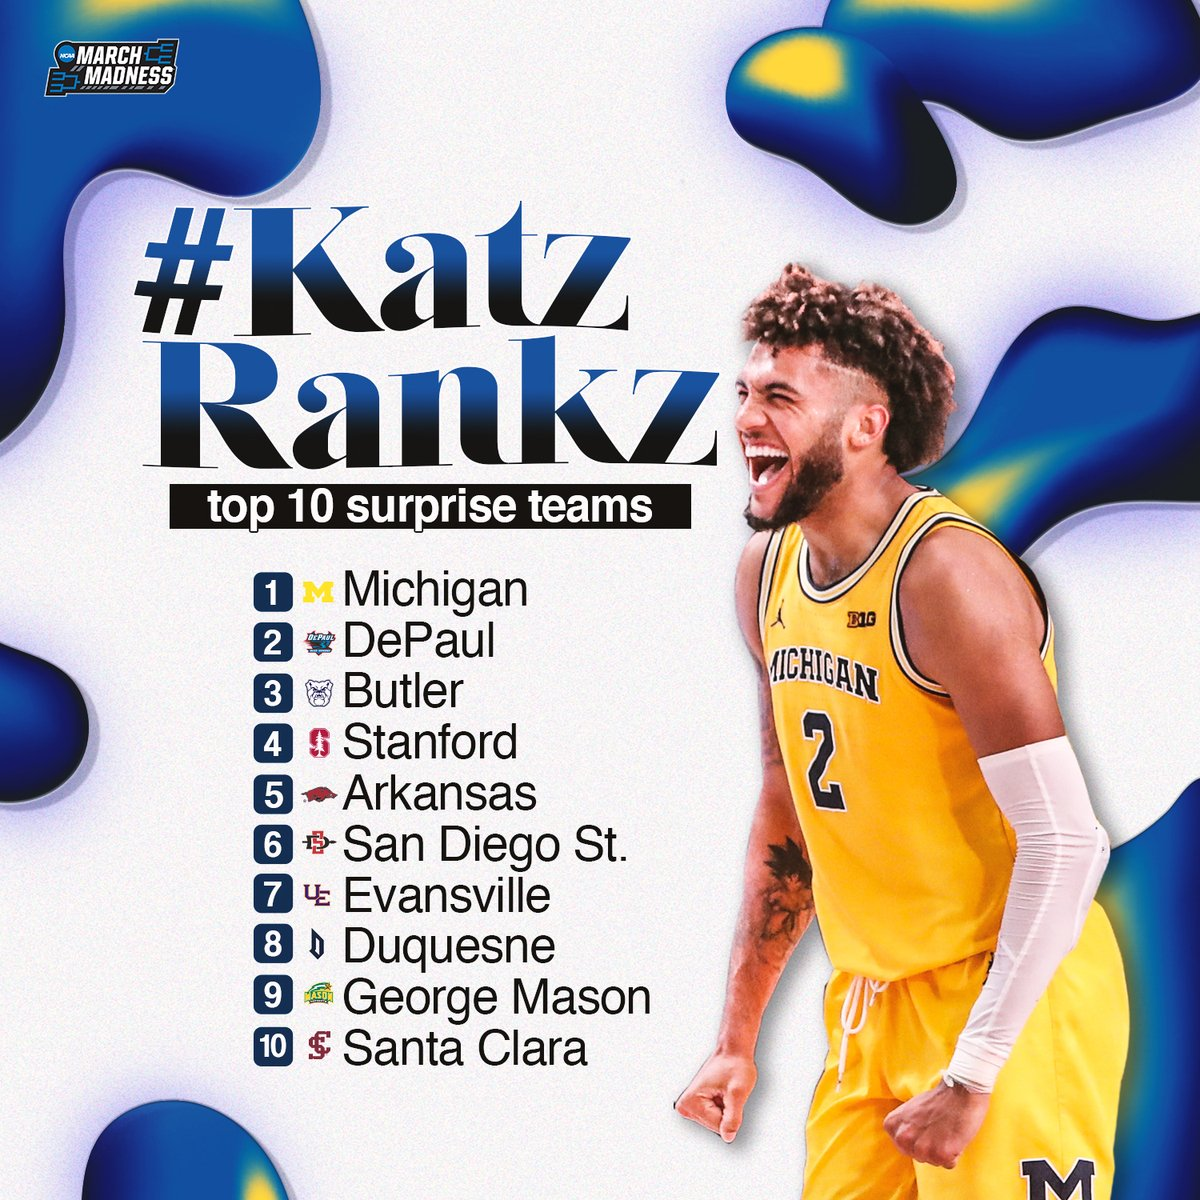 Proving the doubters wrong.   #KatzRankz - Most Surprising Teams, as heard on the #MM365 podcast!  1. Michigan 2. DePaul 3. Butler 4. Stanford 5. Arkansas 6. San Diego State 7. Evansville 8. Duquesne 9. George Mason 10. Santa Clara   http:// bit.ly/AndyKatz    <br>http://pic.twitter.com/7mPvJJvroW